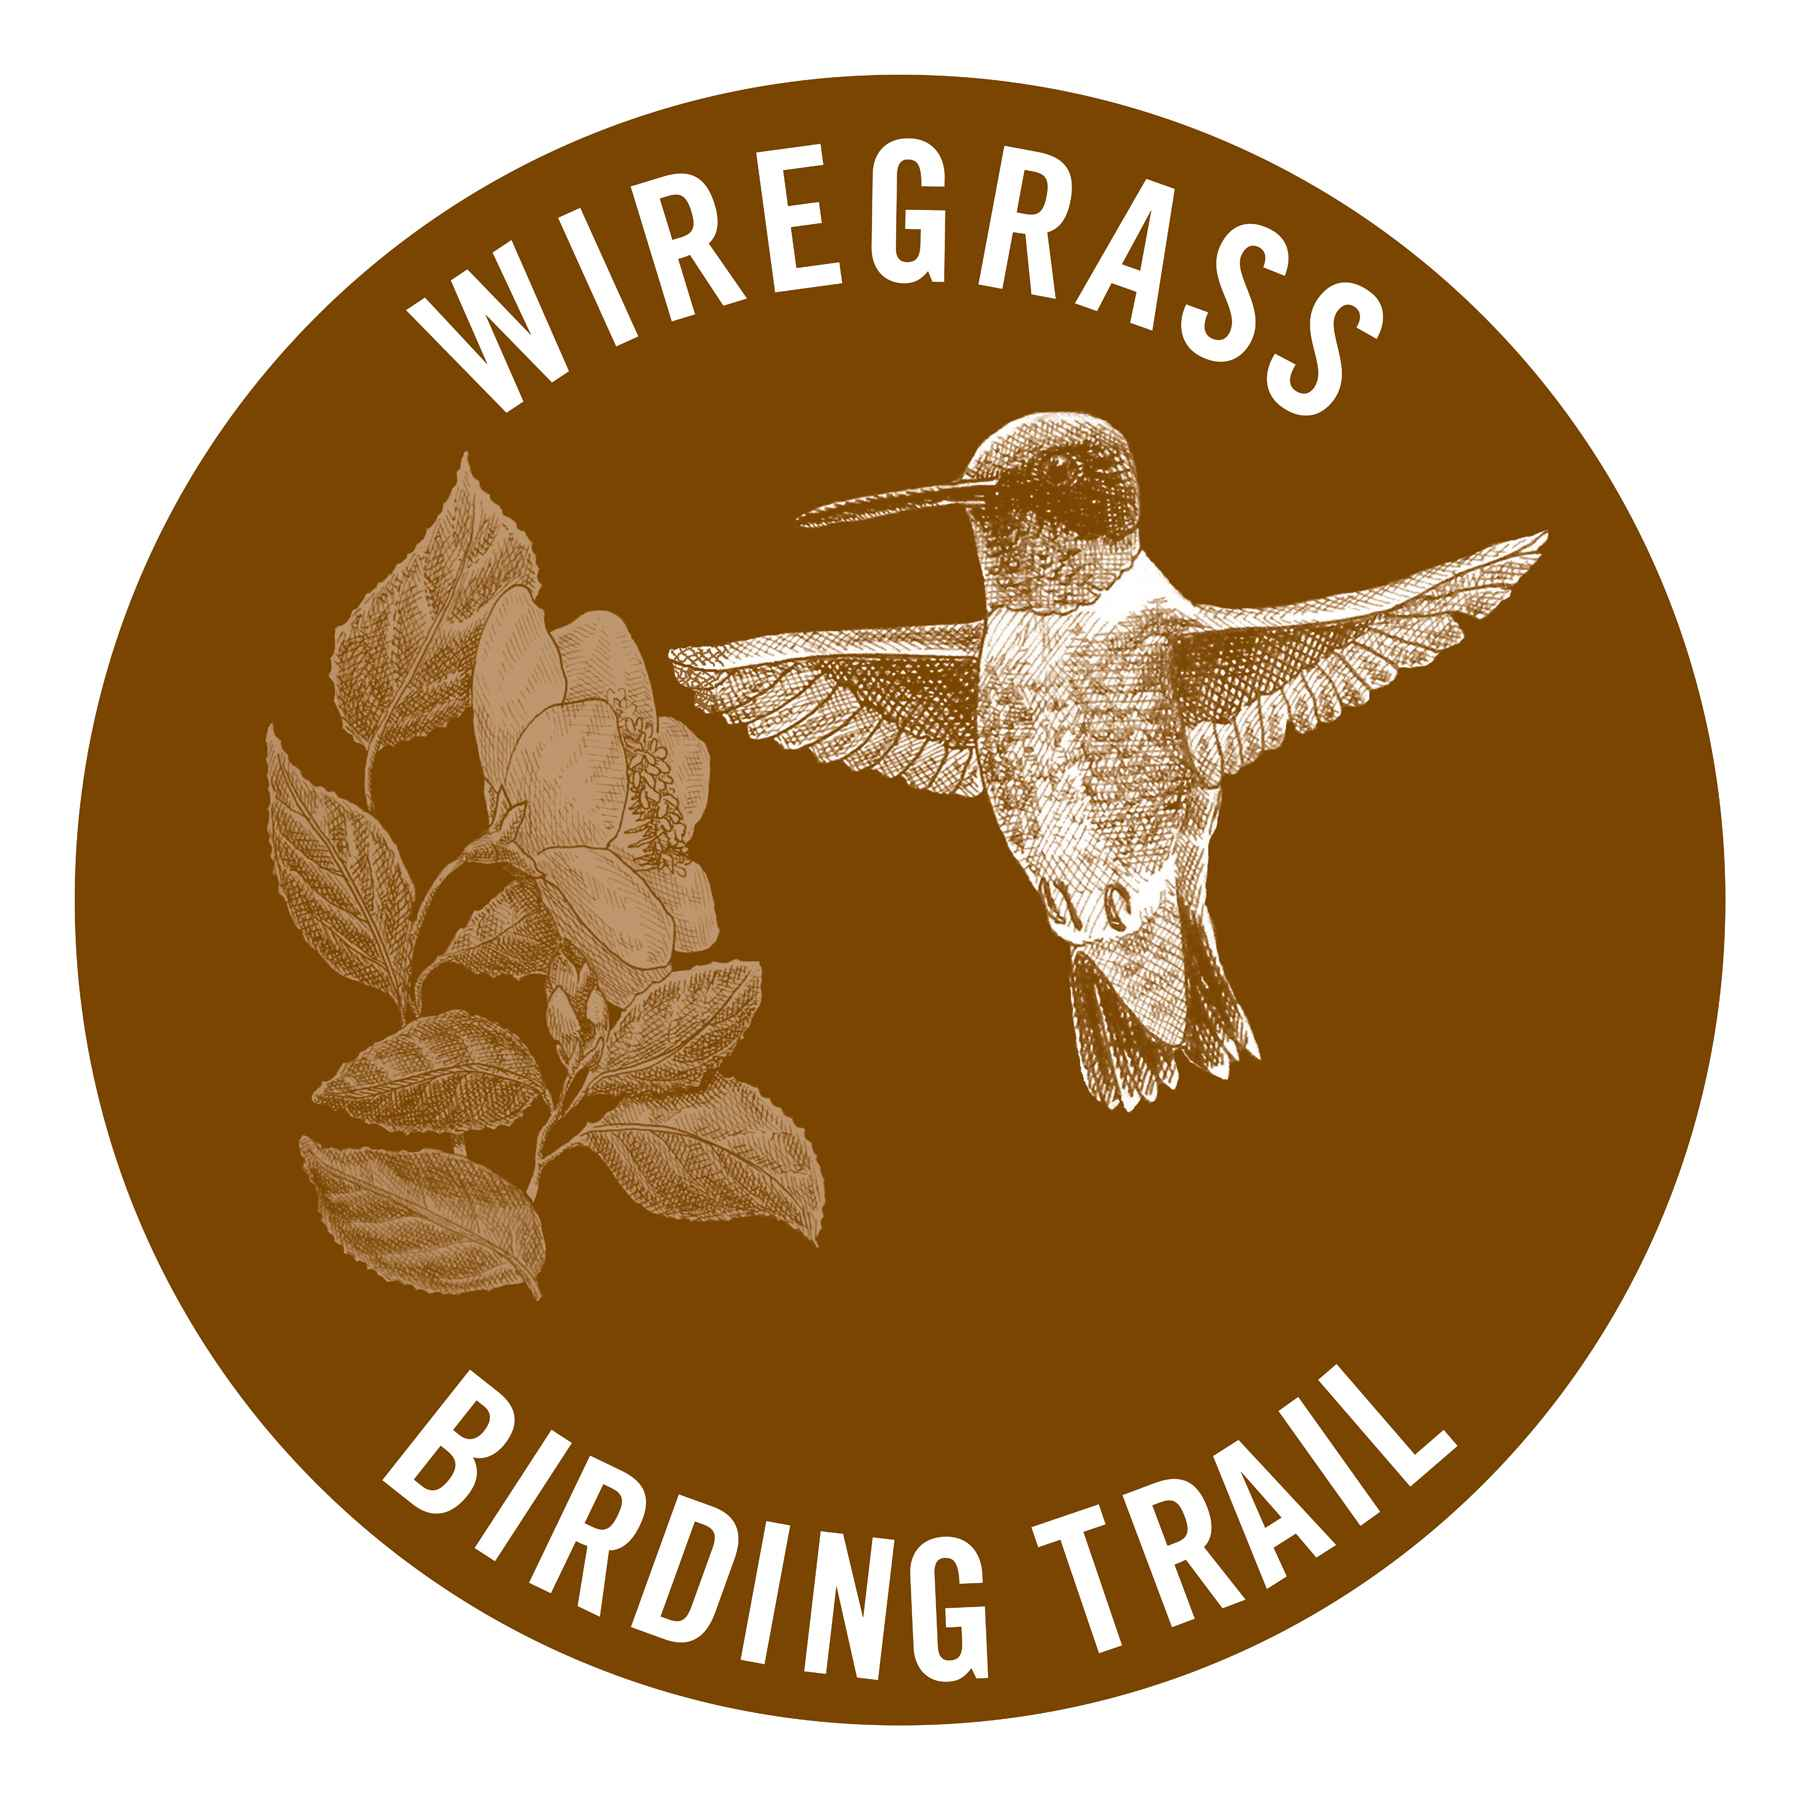 Wiregrass Birding Trail Logo Revised 051010 Alabama